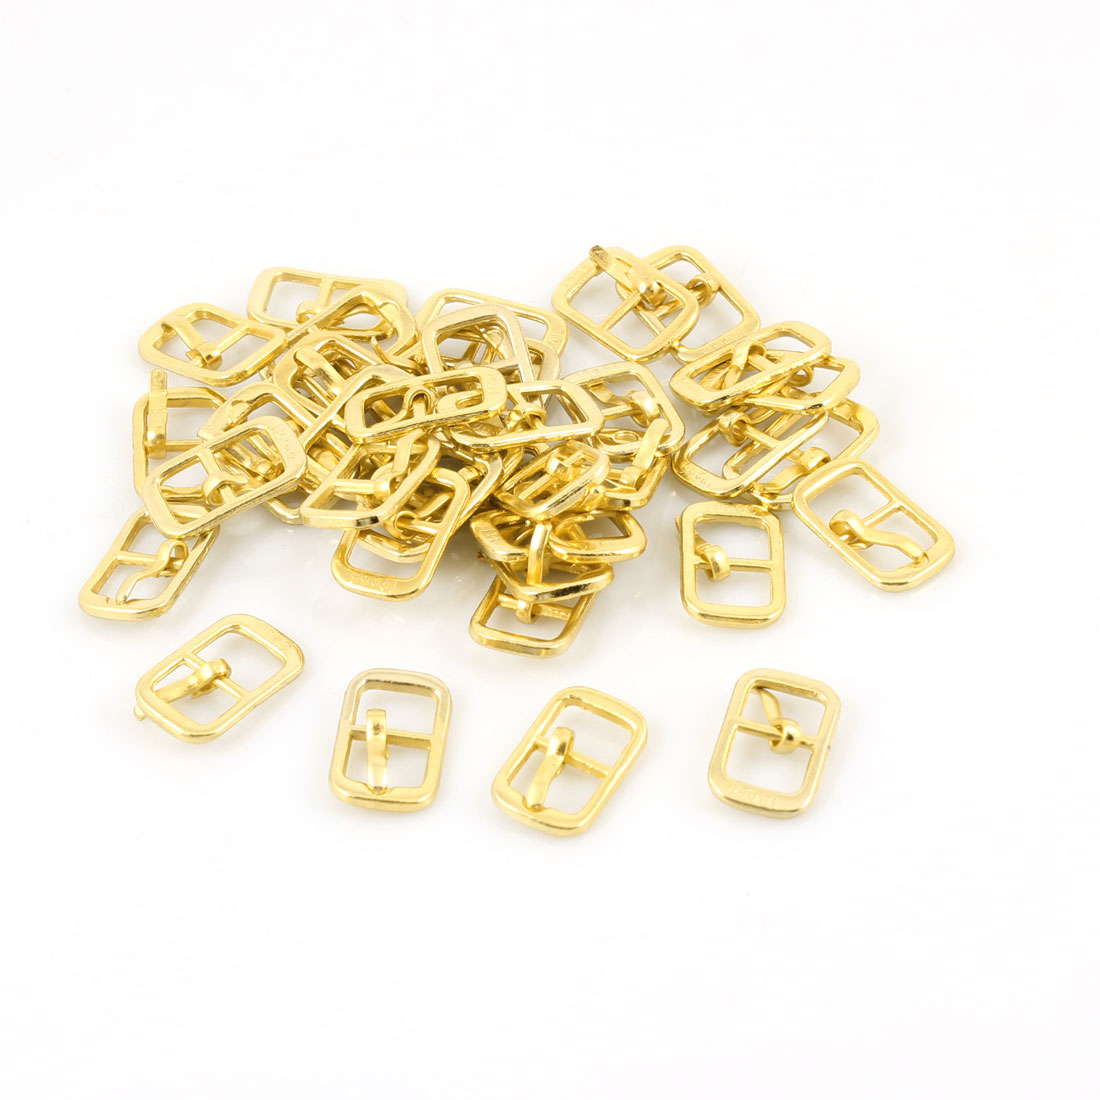 20 Pairs Gold Tone Metal Leather Shoes Ornament Needle Buckles